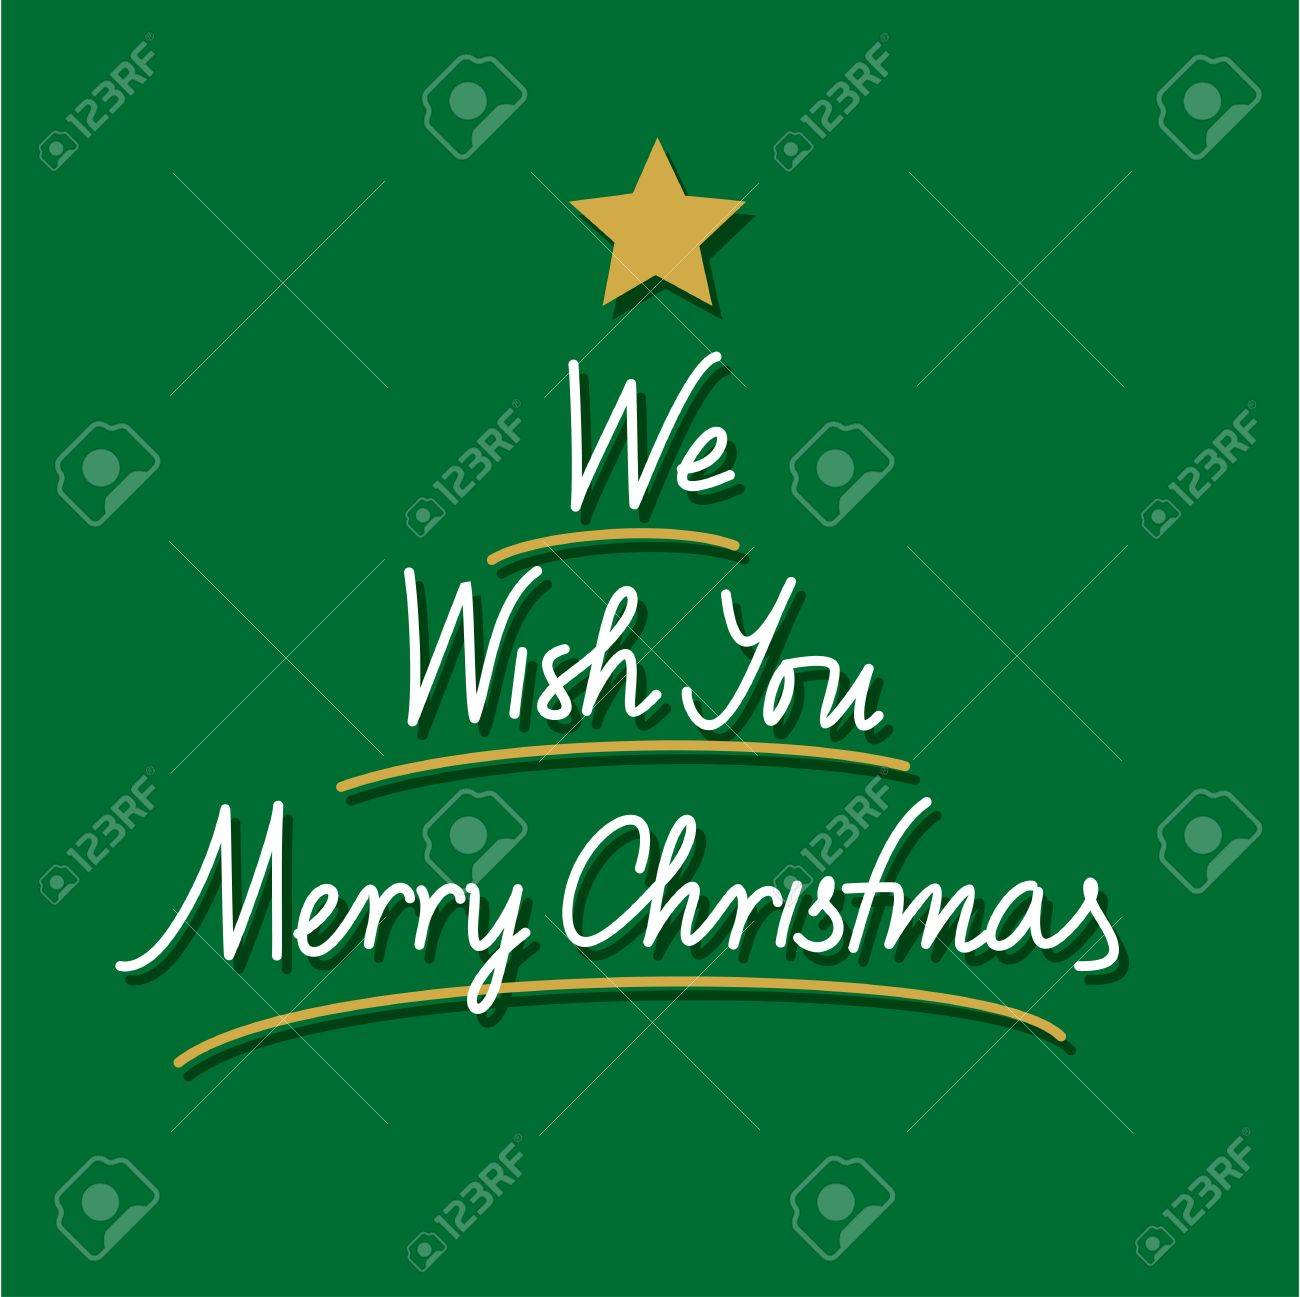 We Wish You Merry Christmas Hand Lettering Royalty Free Cliparts ...